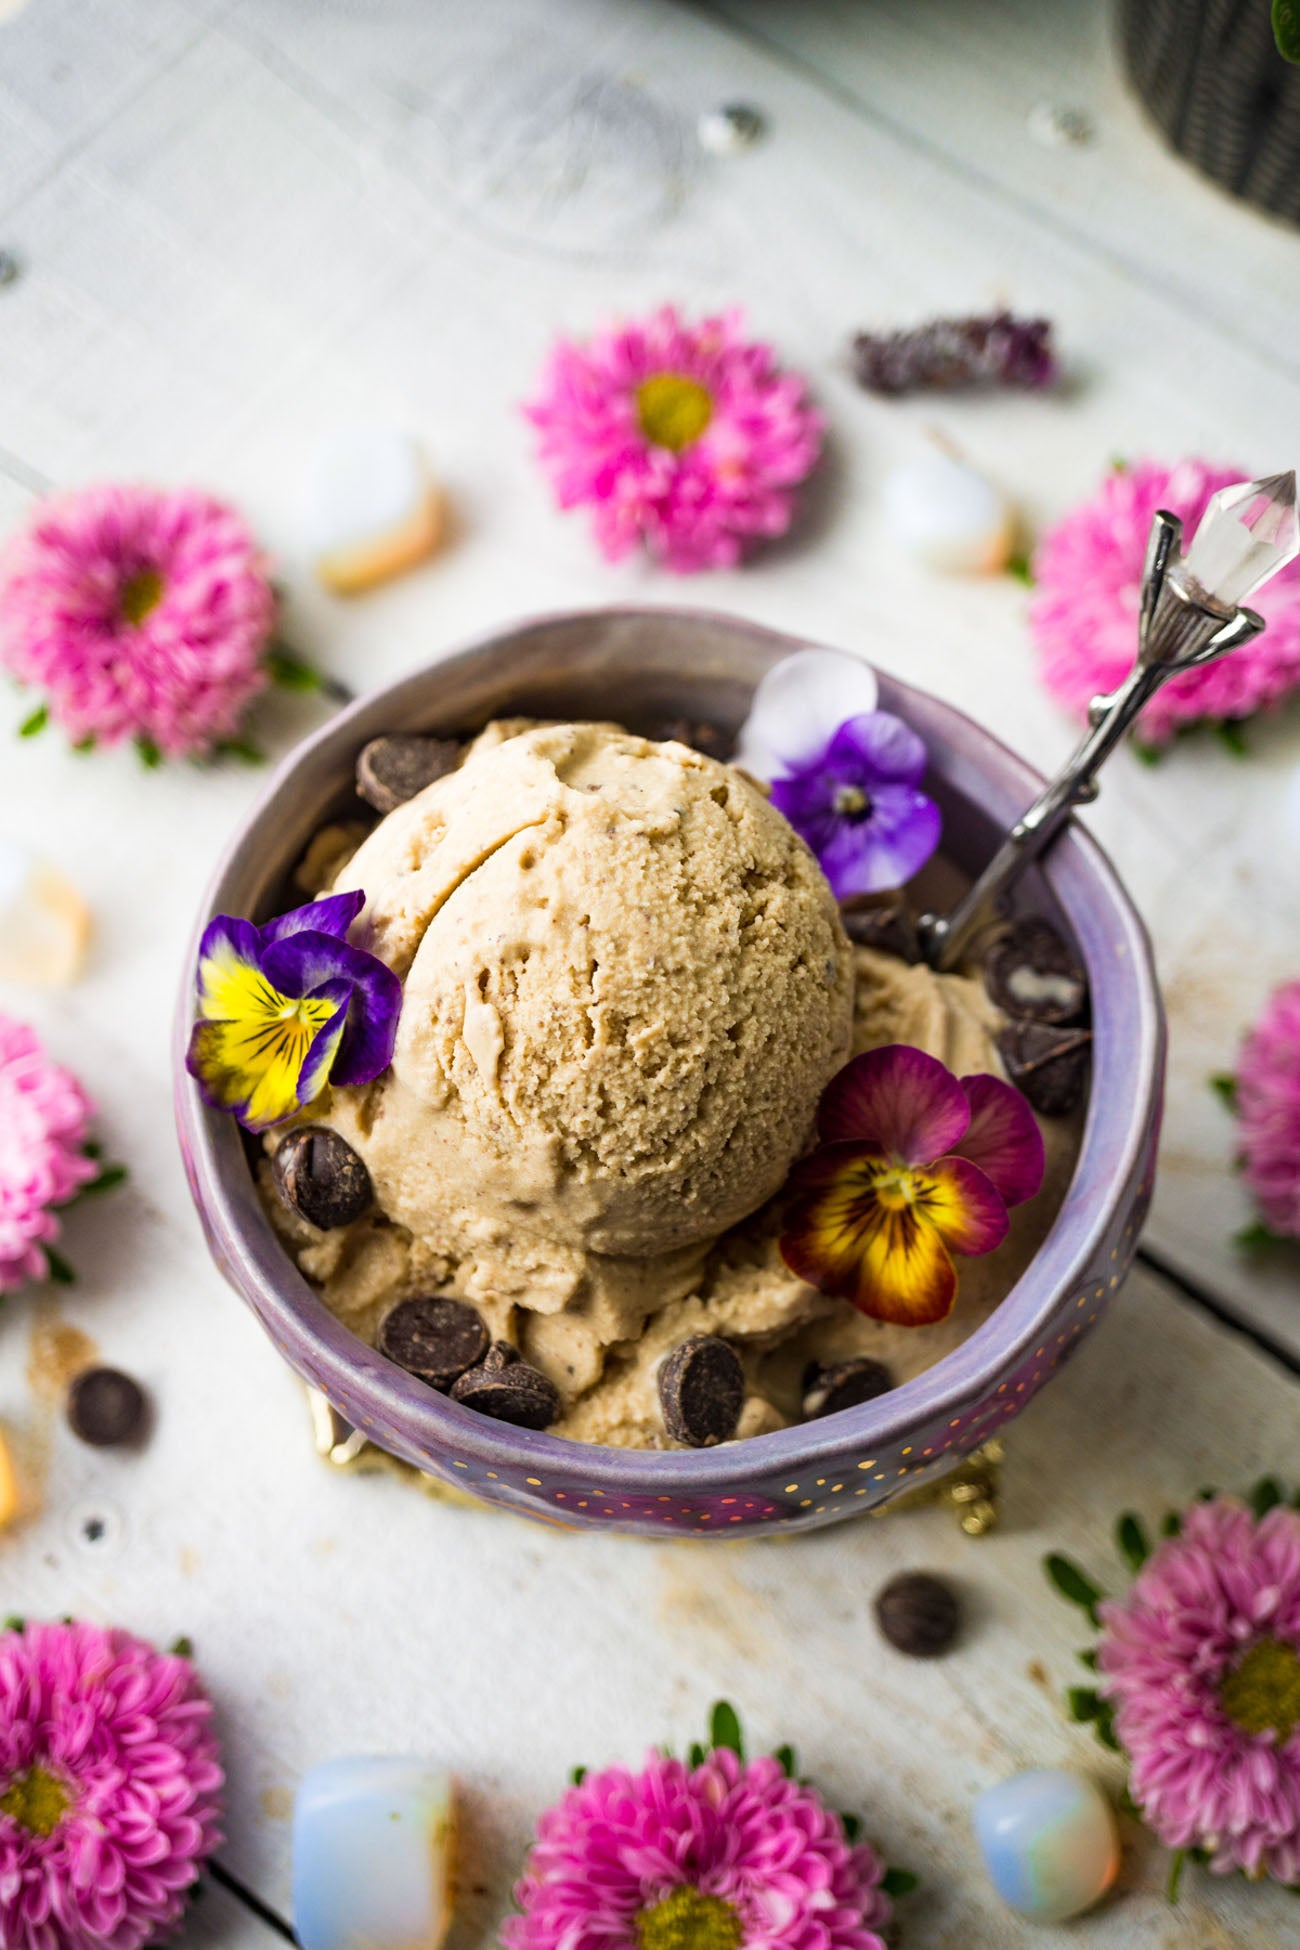 Vegan Dairy Free Chocolate Coffee Ice Cream